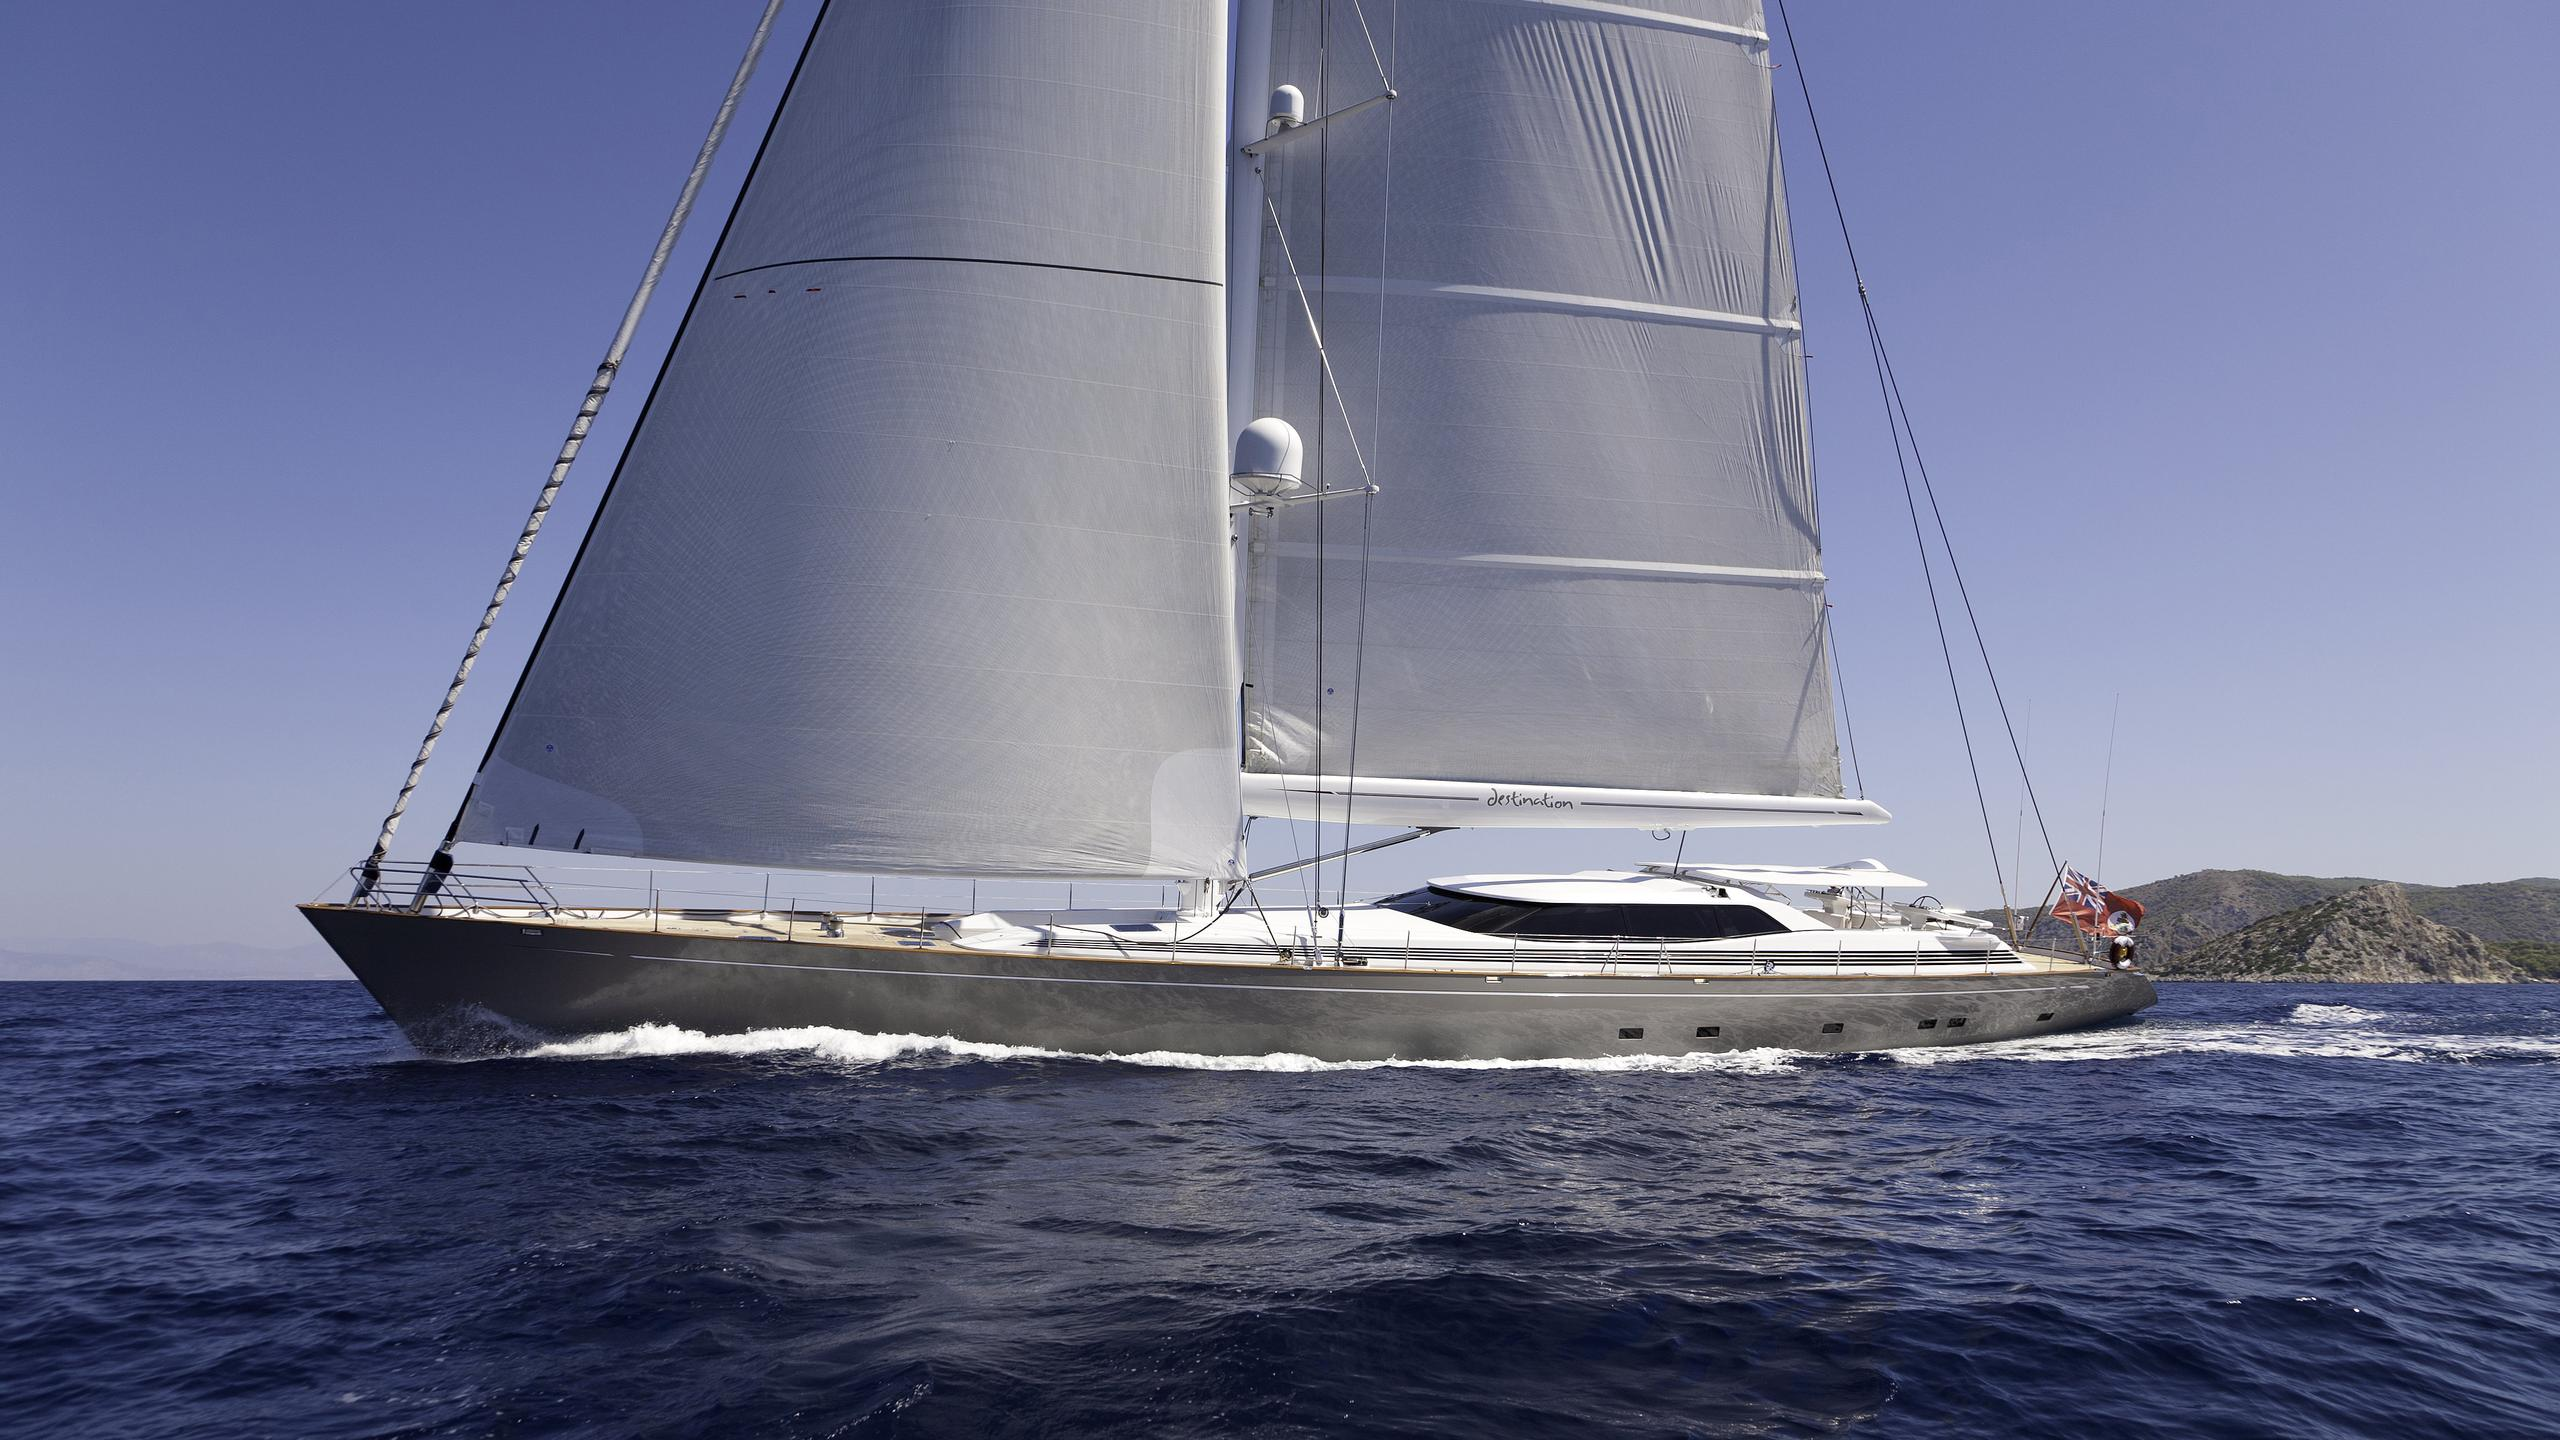 destination-fox-harb'r-yacht-for-sale-profile